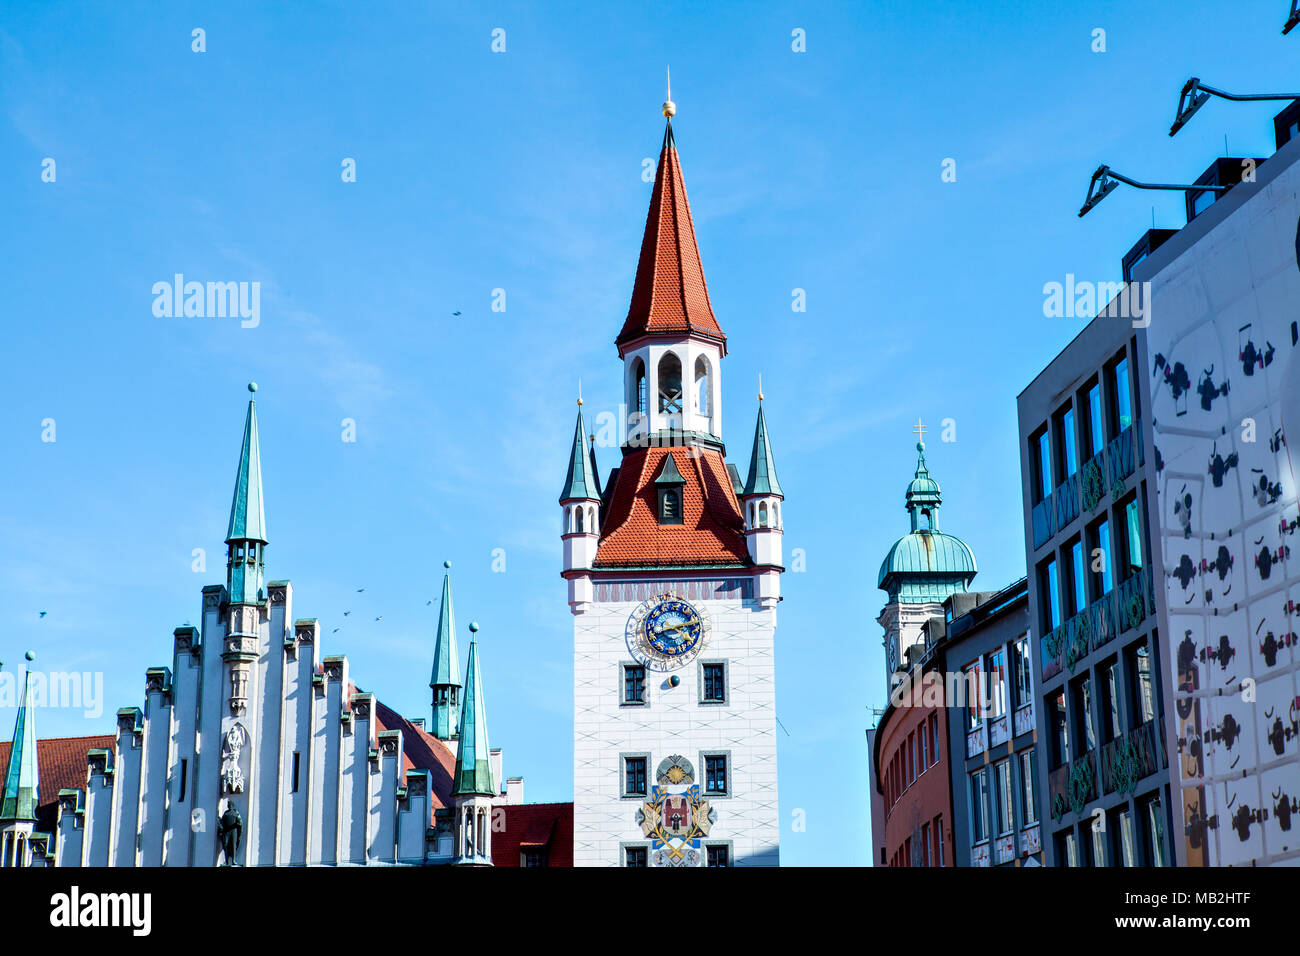 Old Townhall at Marienplatz in Munich (Mary's Square) - Stock Image